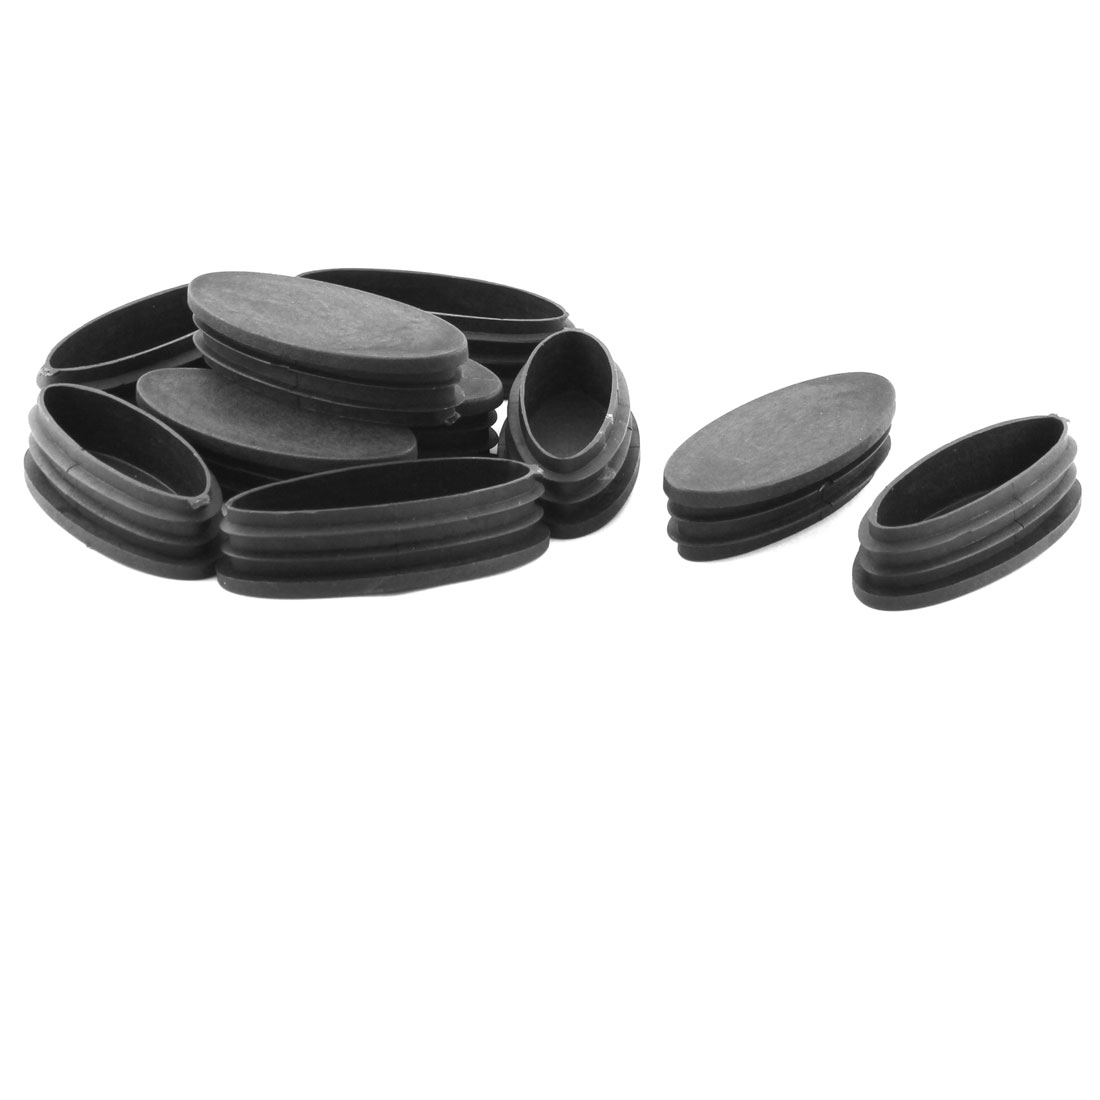 Furniture Table Chair Leg Feet Plastic Oval Pipe Tube Insert Black 10 Pcs